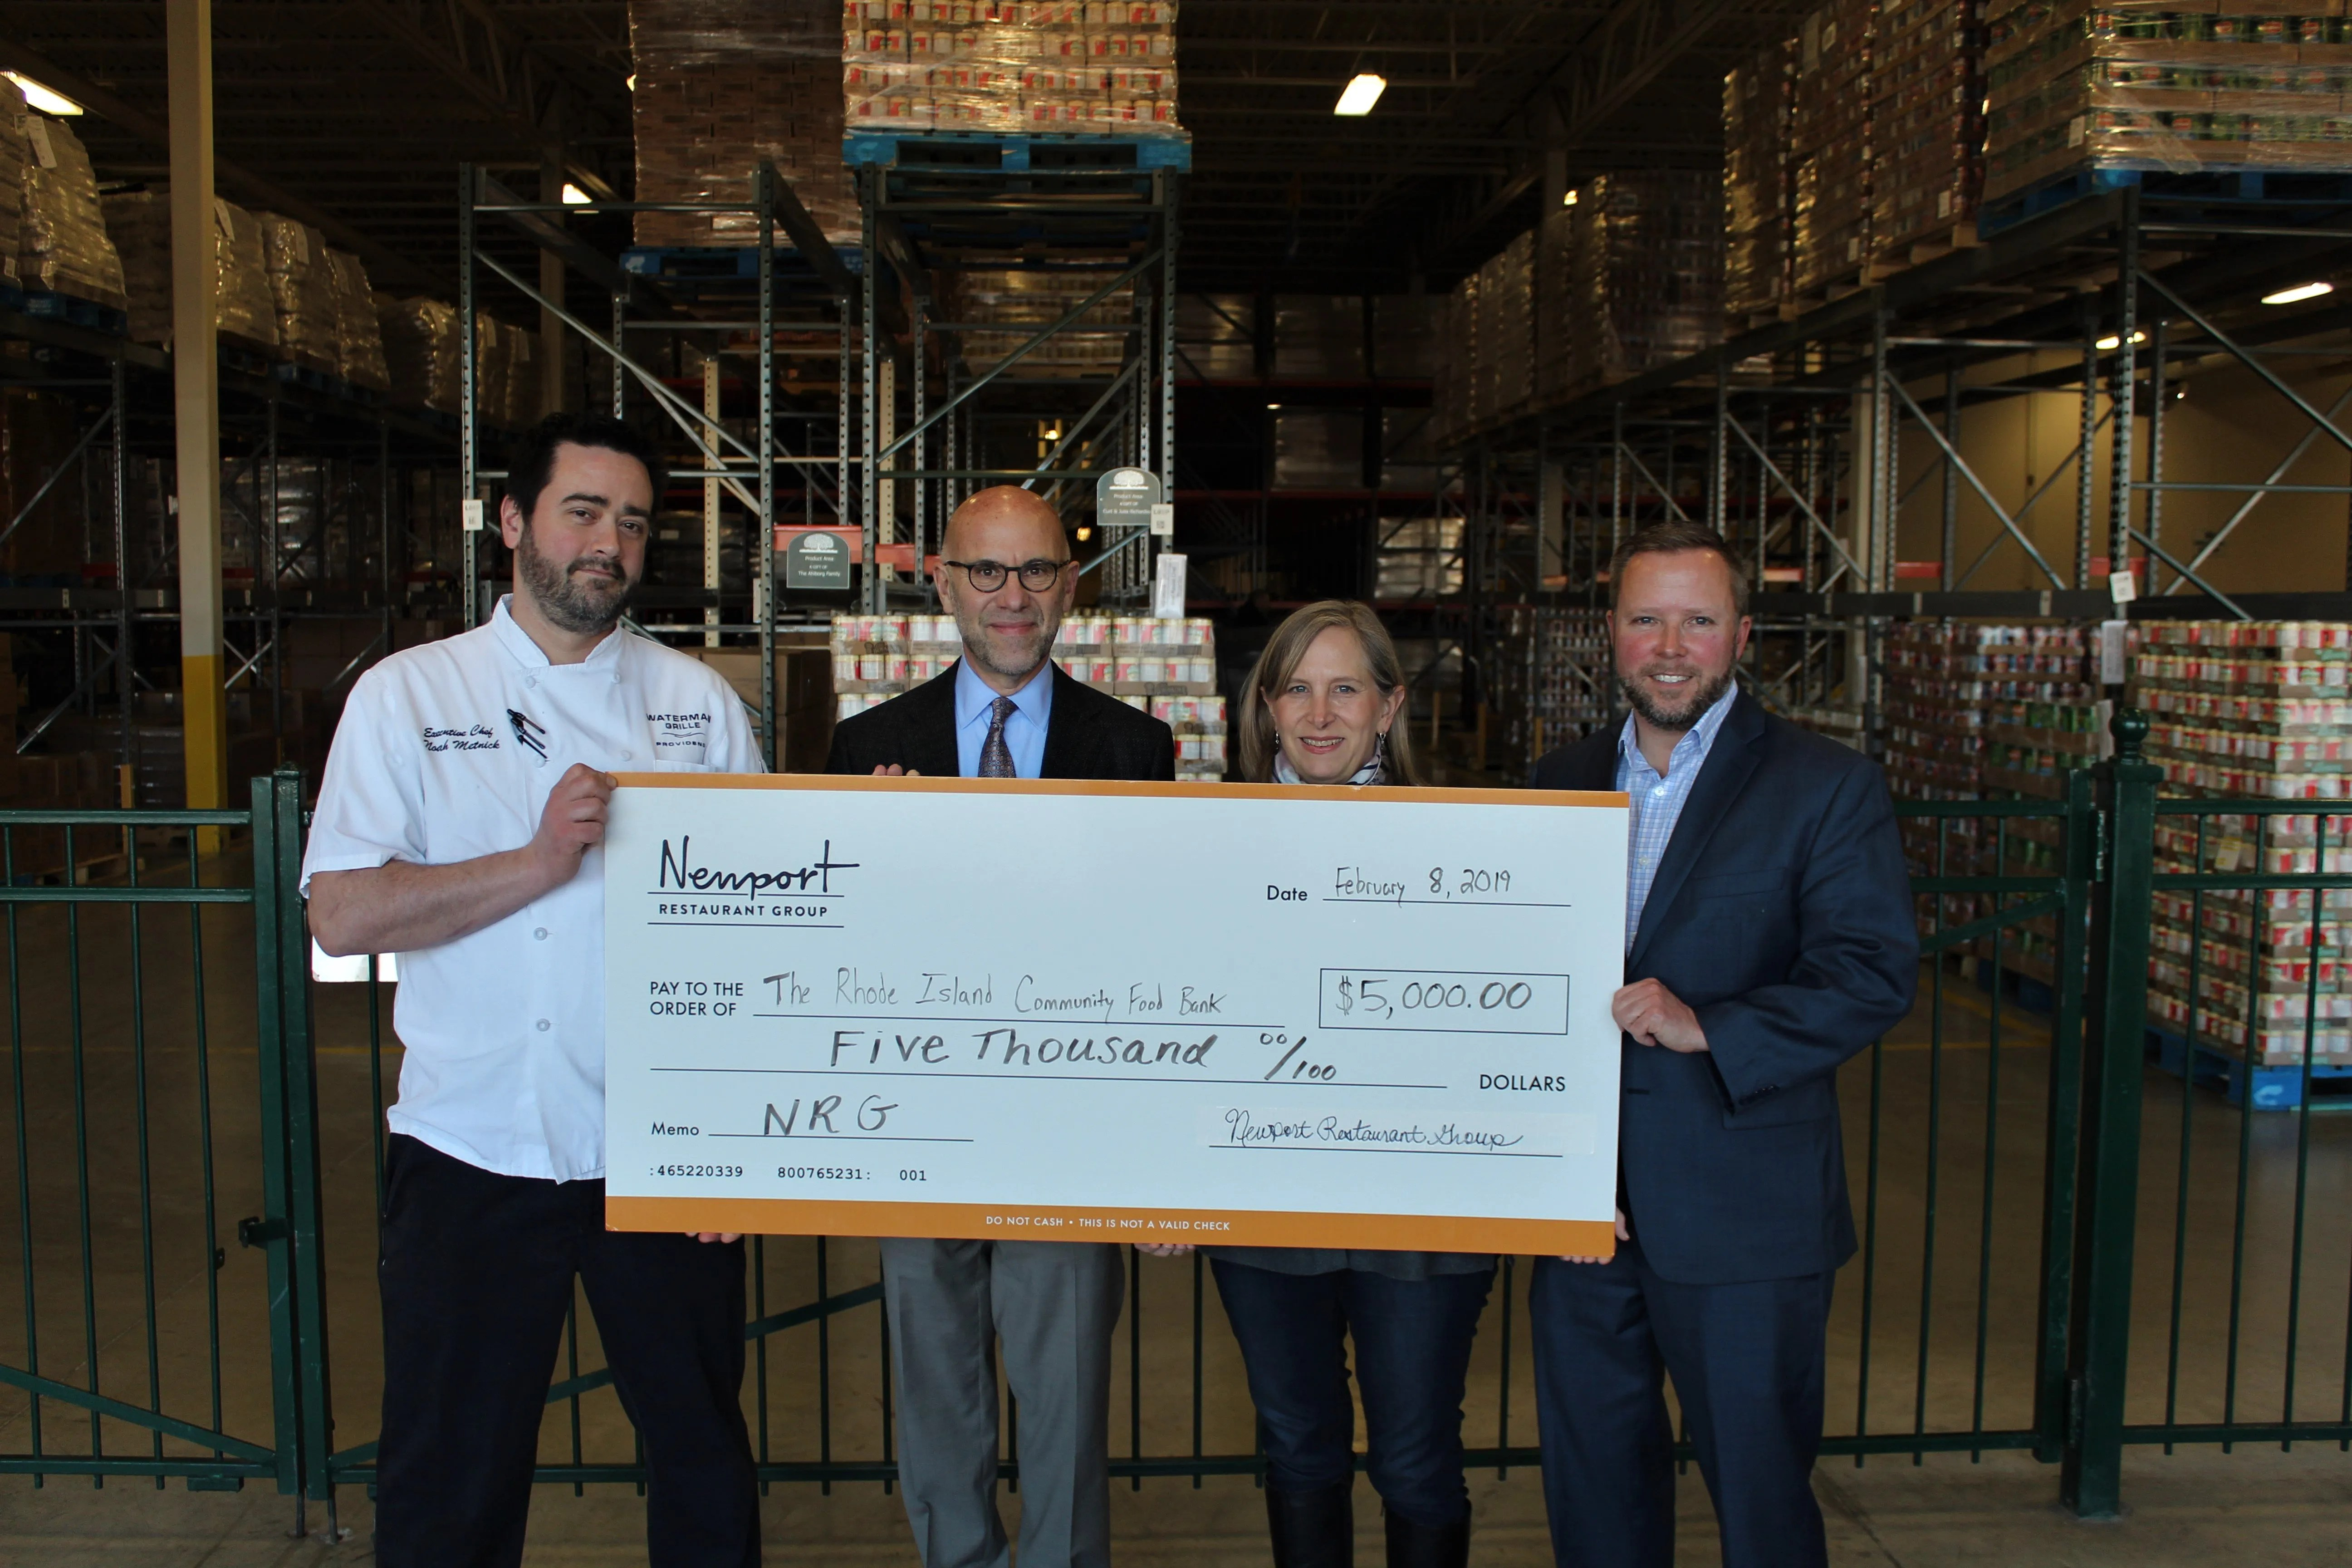 (left to right): Noah Metnick, Executive Chef, Waterman Grille; Andrew Schiff, Chief Executive Officer, Rhode Island Community Food Bank; Lisa Roth Blackman, Chief Philanthropy Officer, Rhode Island Community Food Bank; and Tobey Chase Sanborn, Senior General Manager, Hemenway's